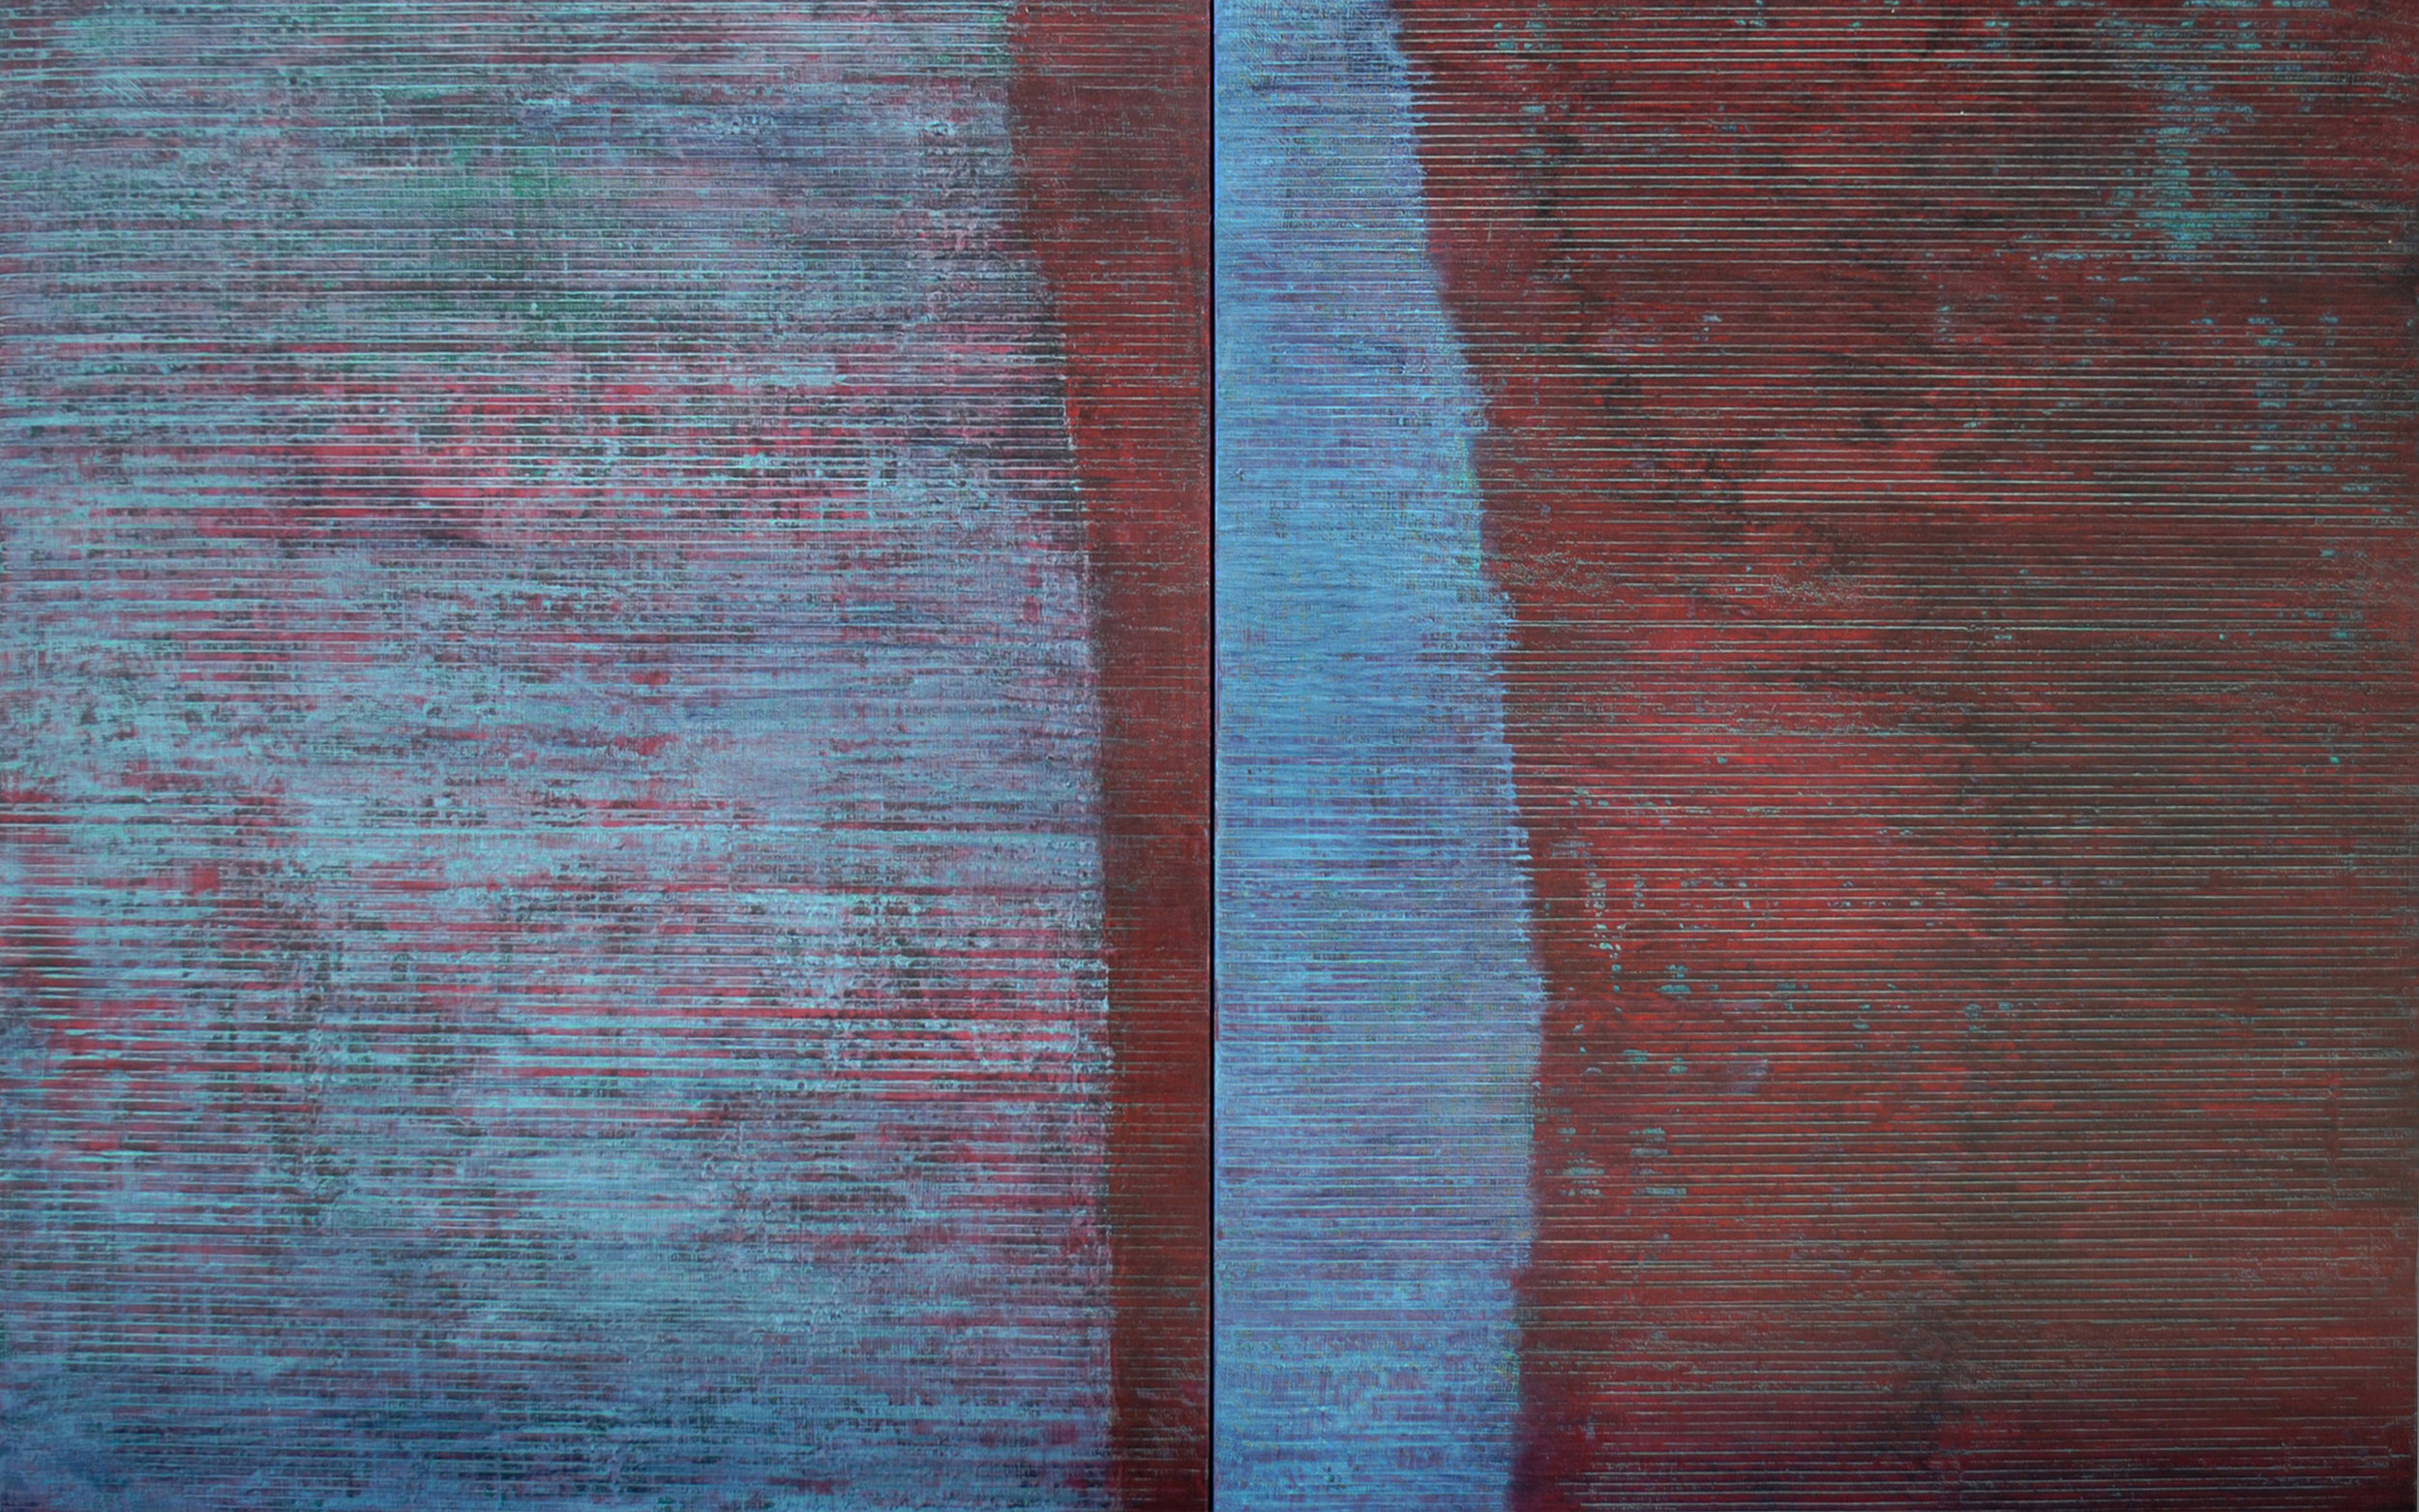 Linea Terminale: 5.12, 2012, Oil on linen over panels, 20 x 36 inches.